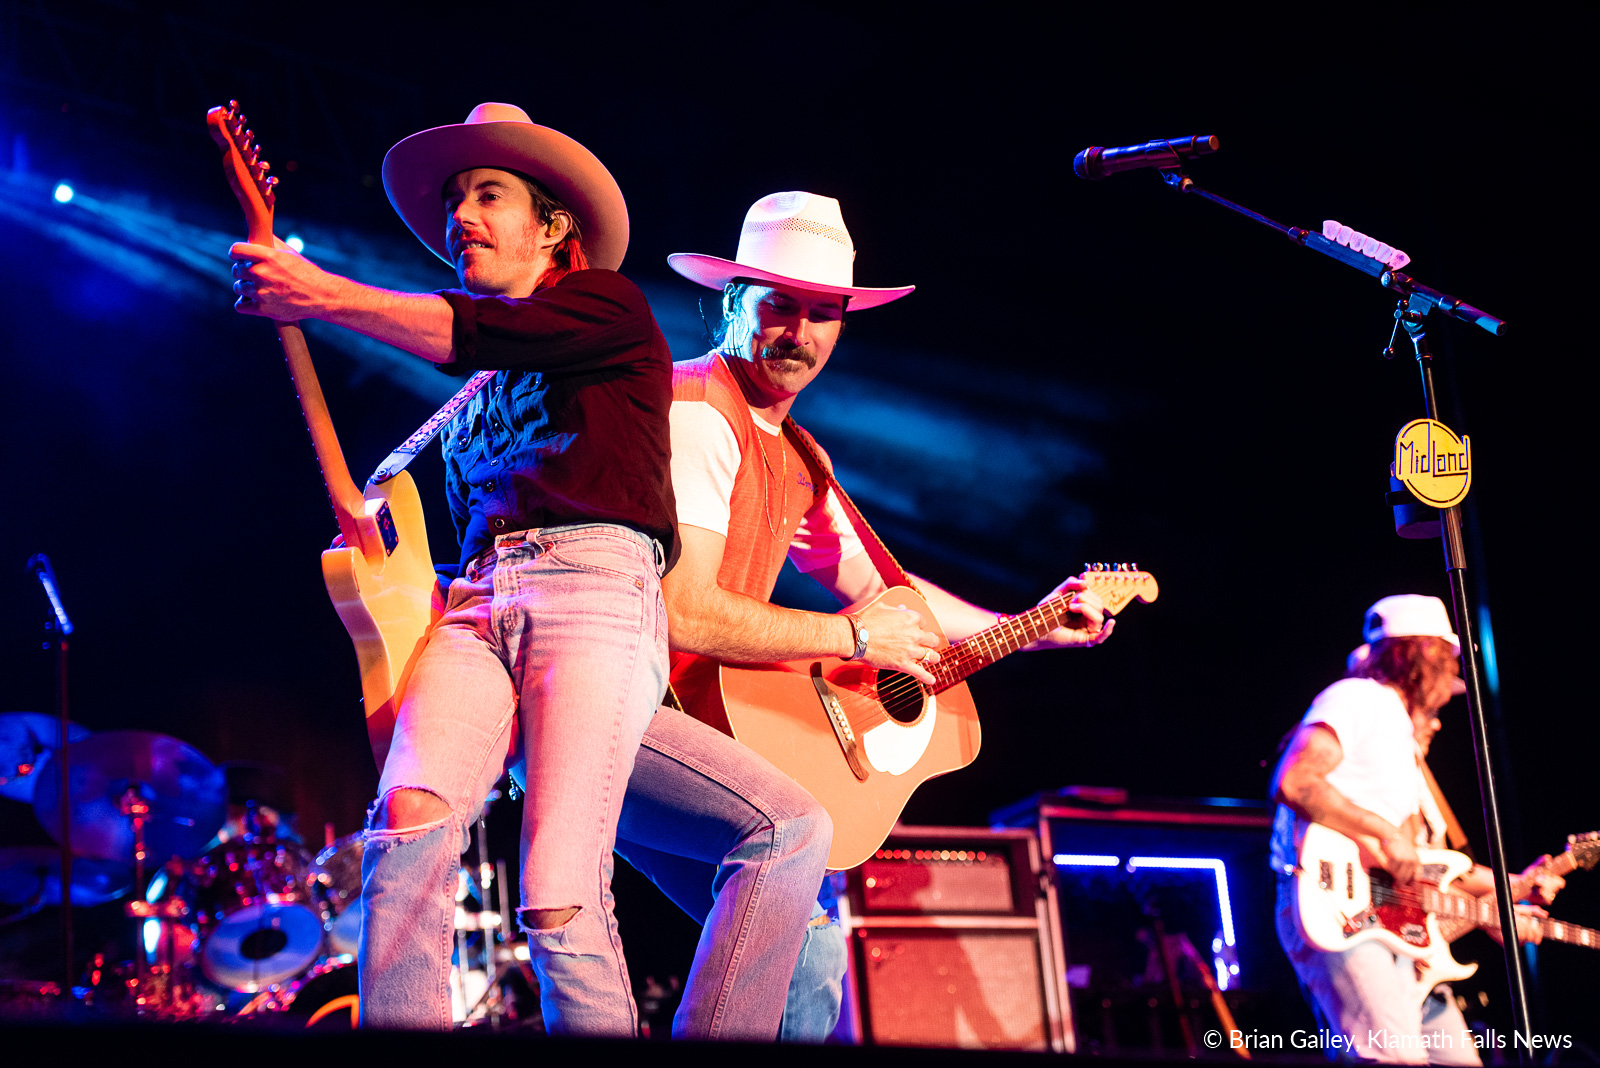 Midland performs at the 2019 Klamath County Fair, Day 1 (Image, Brian Gailey / Klamath Falls News)